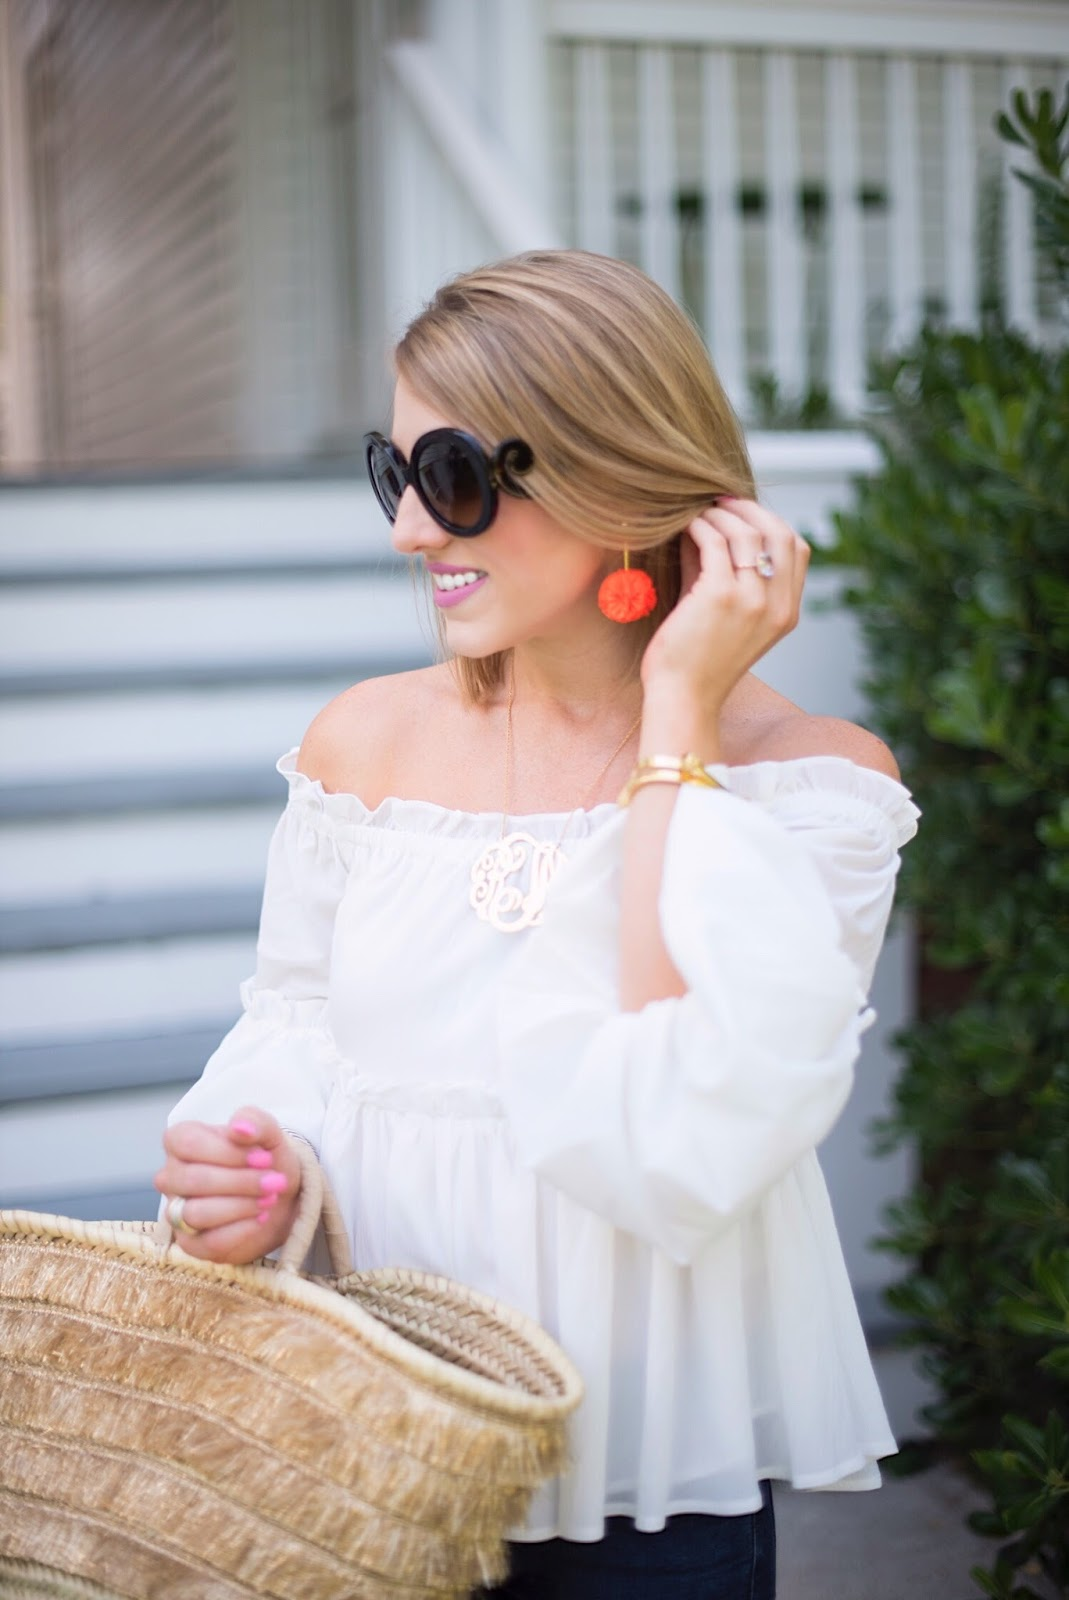 J.Crew Carnation Earrings - Click through to see more on Something Delightful Blog!